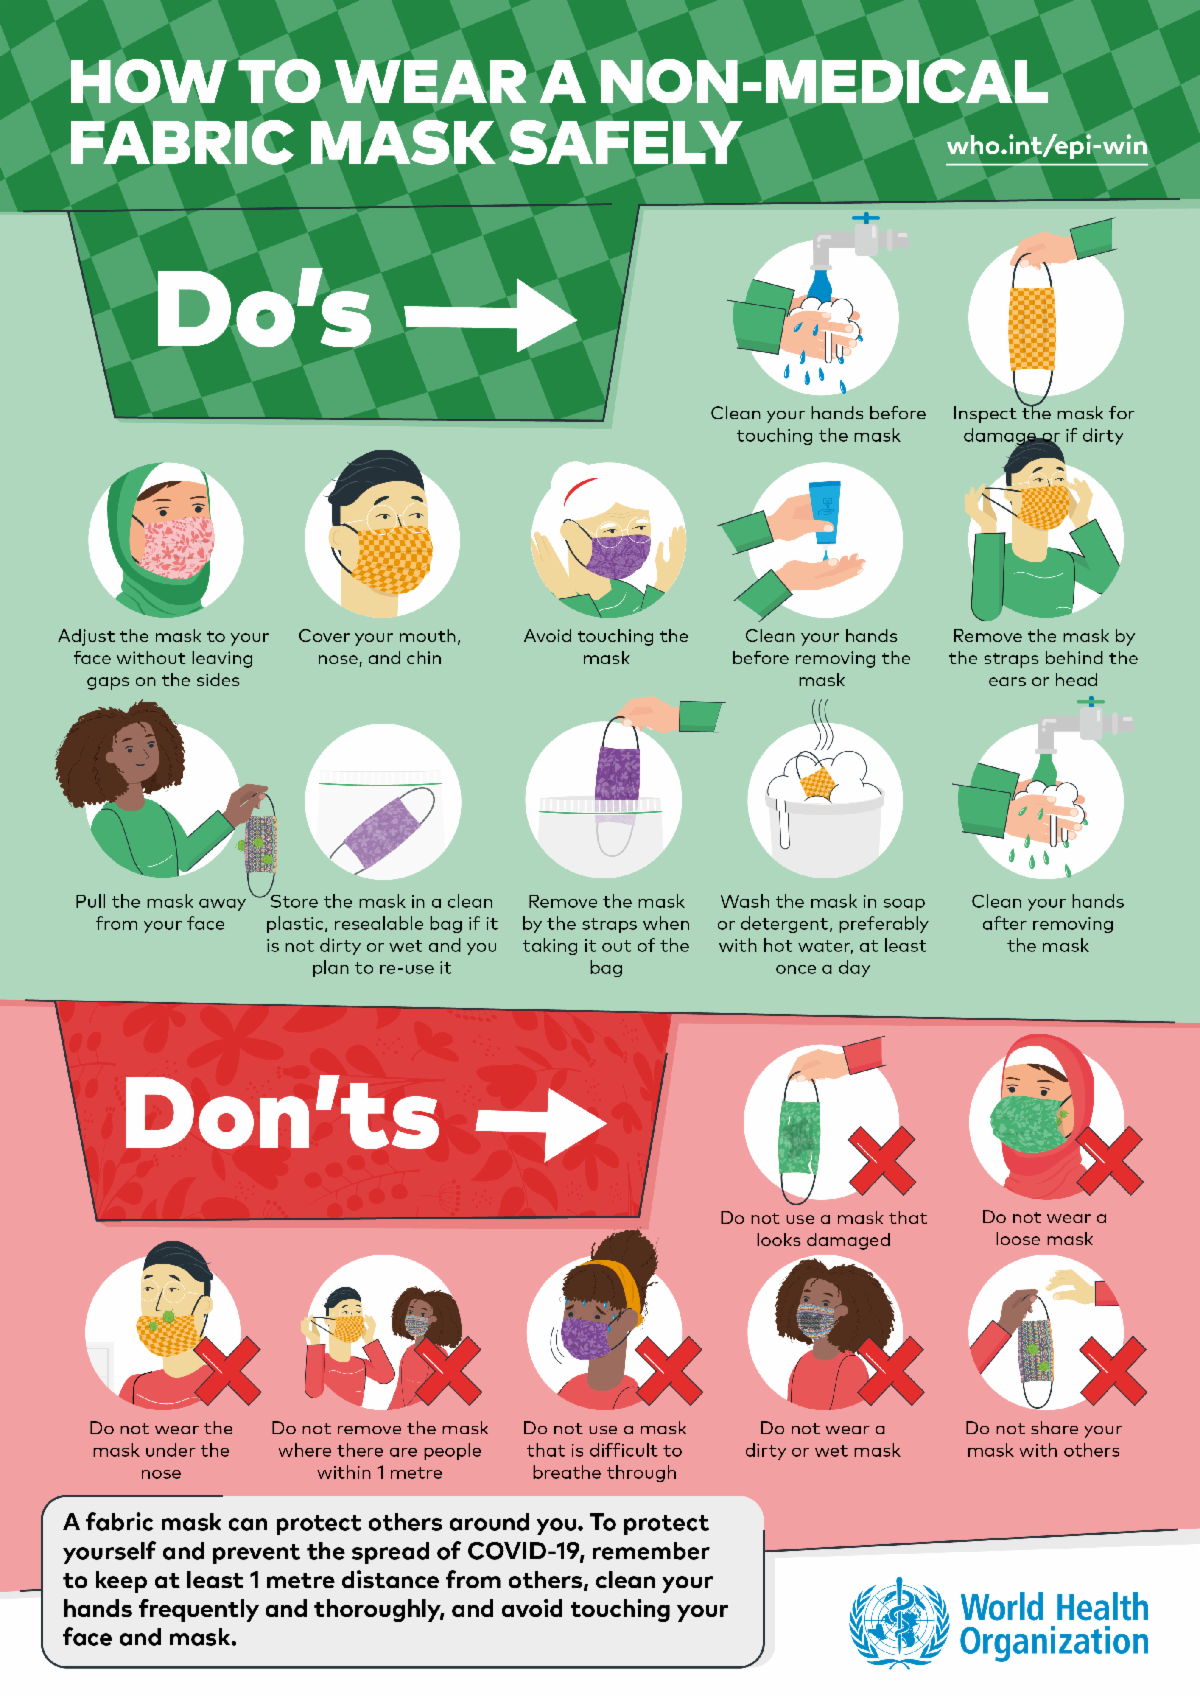 World Health Organization - Infographic - How to wear a non-medical fabric mask safely